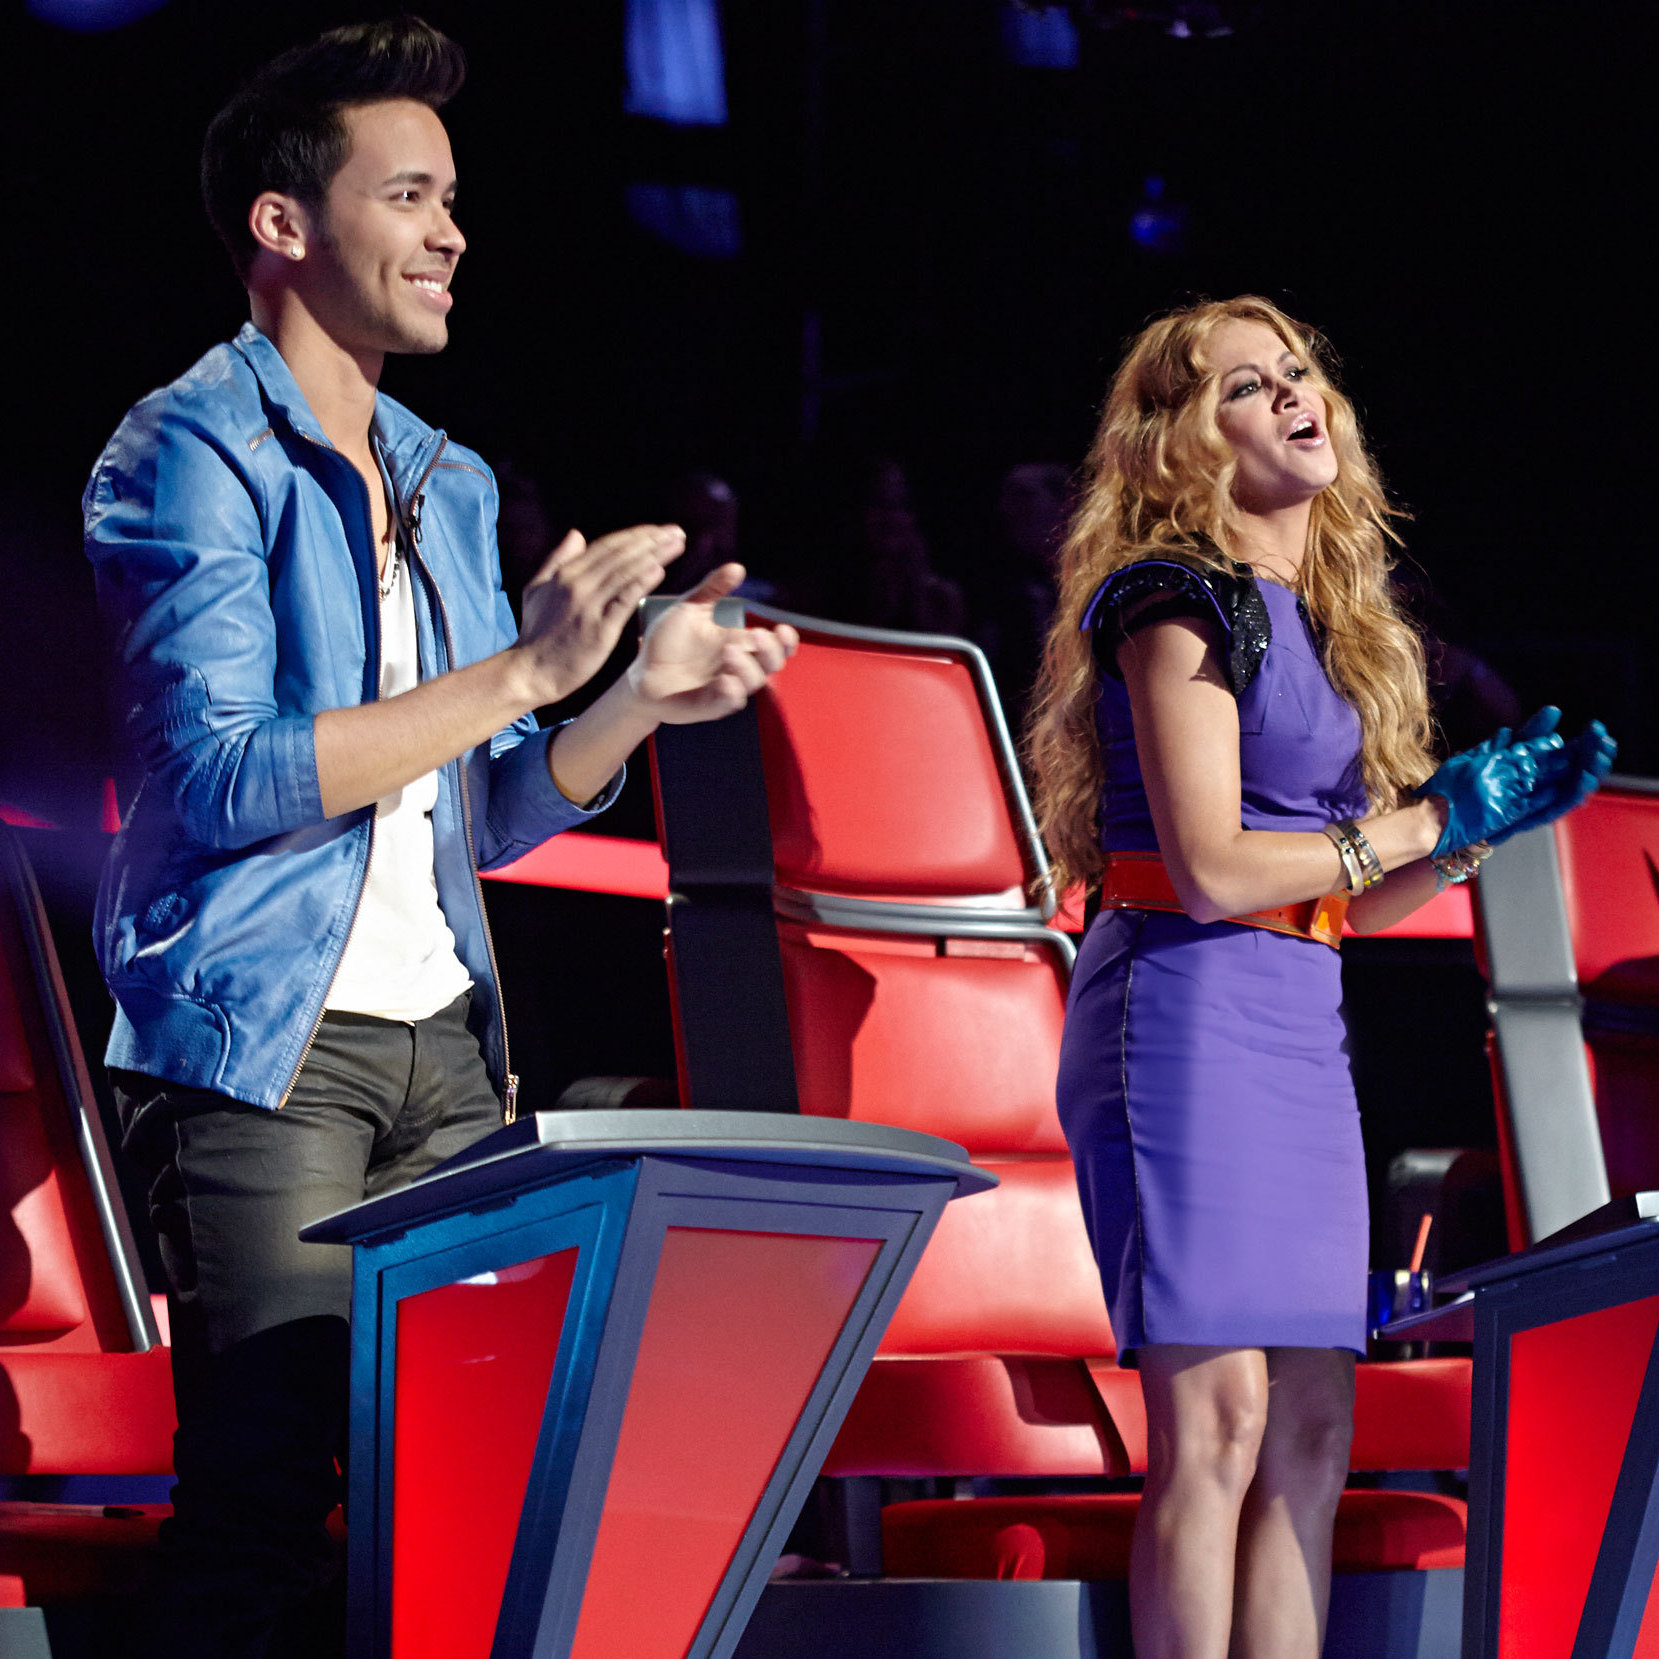 La Voz Kids' coaches include Dominican-American singer-songwriter Prince Royce, Mexican pop star Paulina Rubio and Mexican-American singer Roberto Tapia.